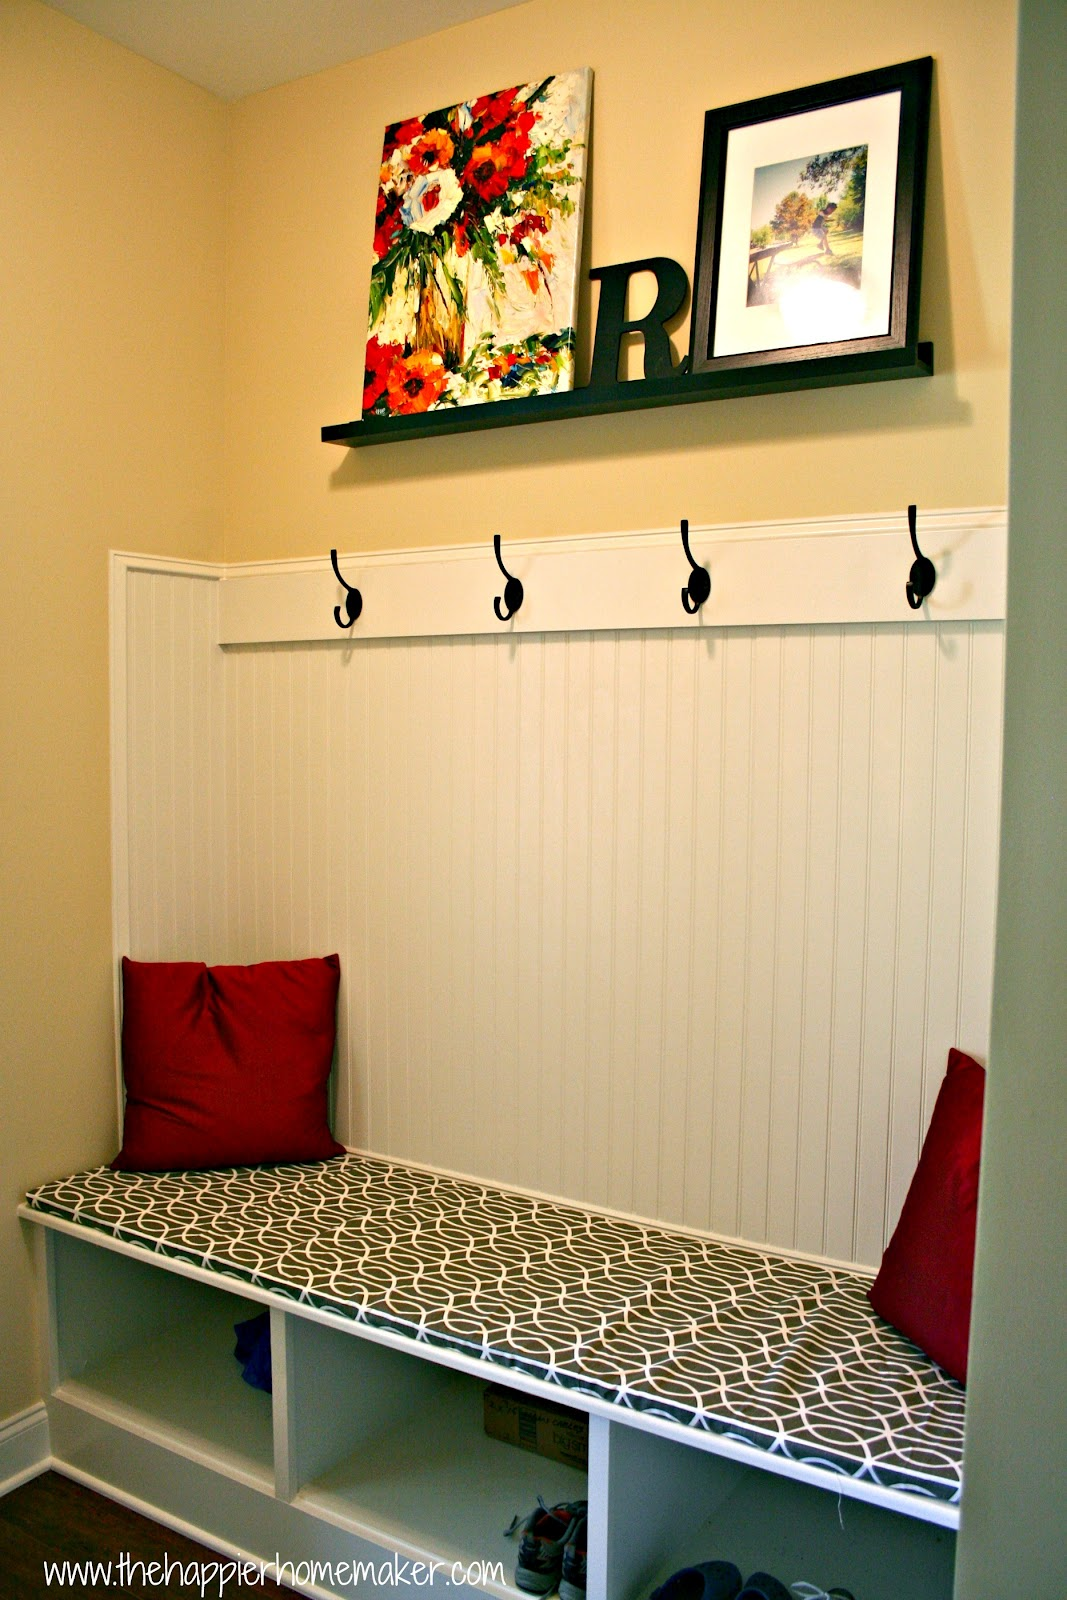 Fast Diy No Sew Bench Cushion Without